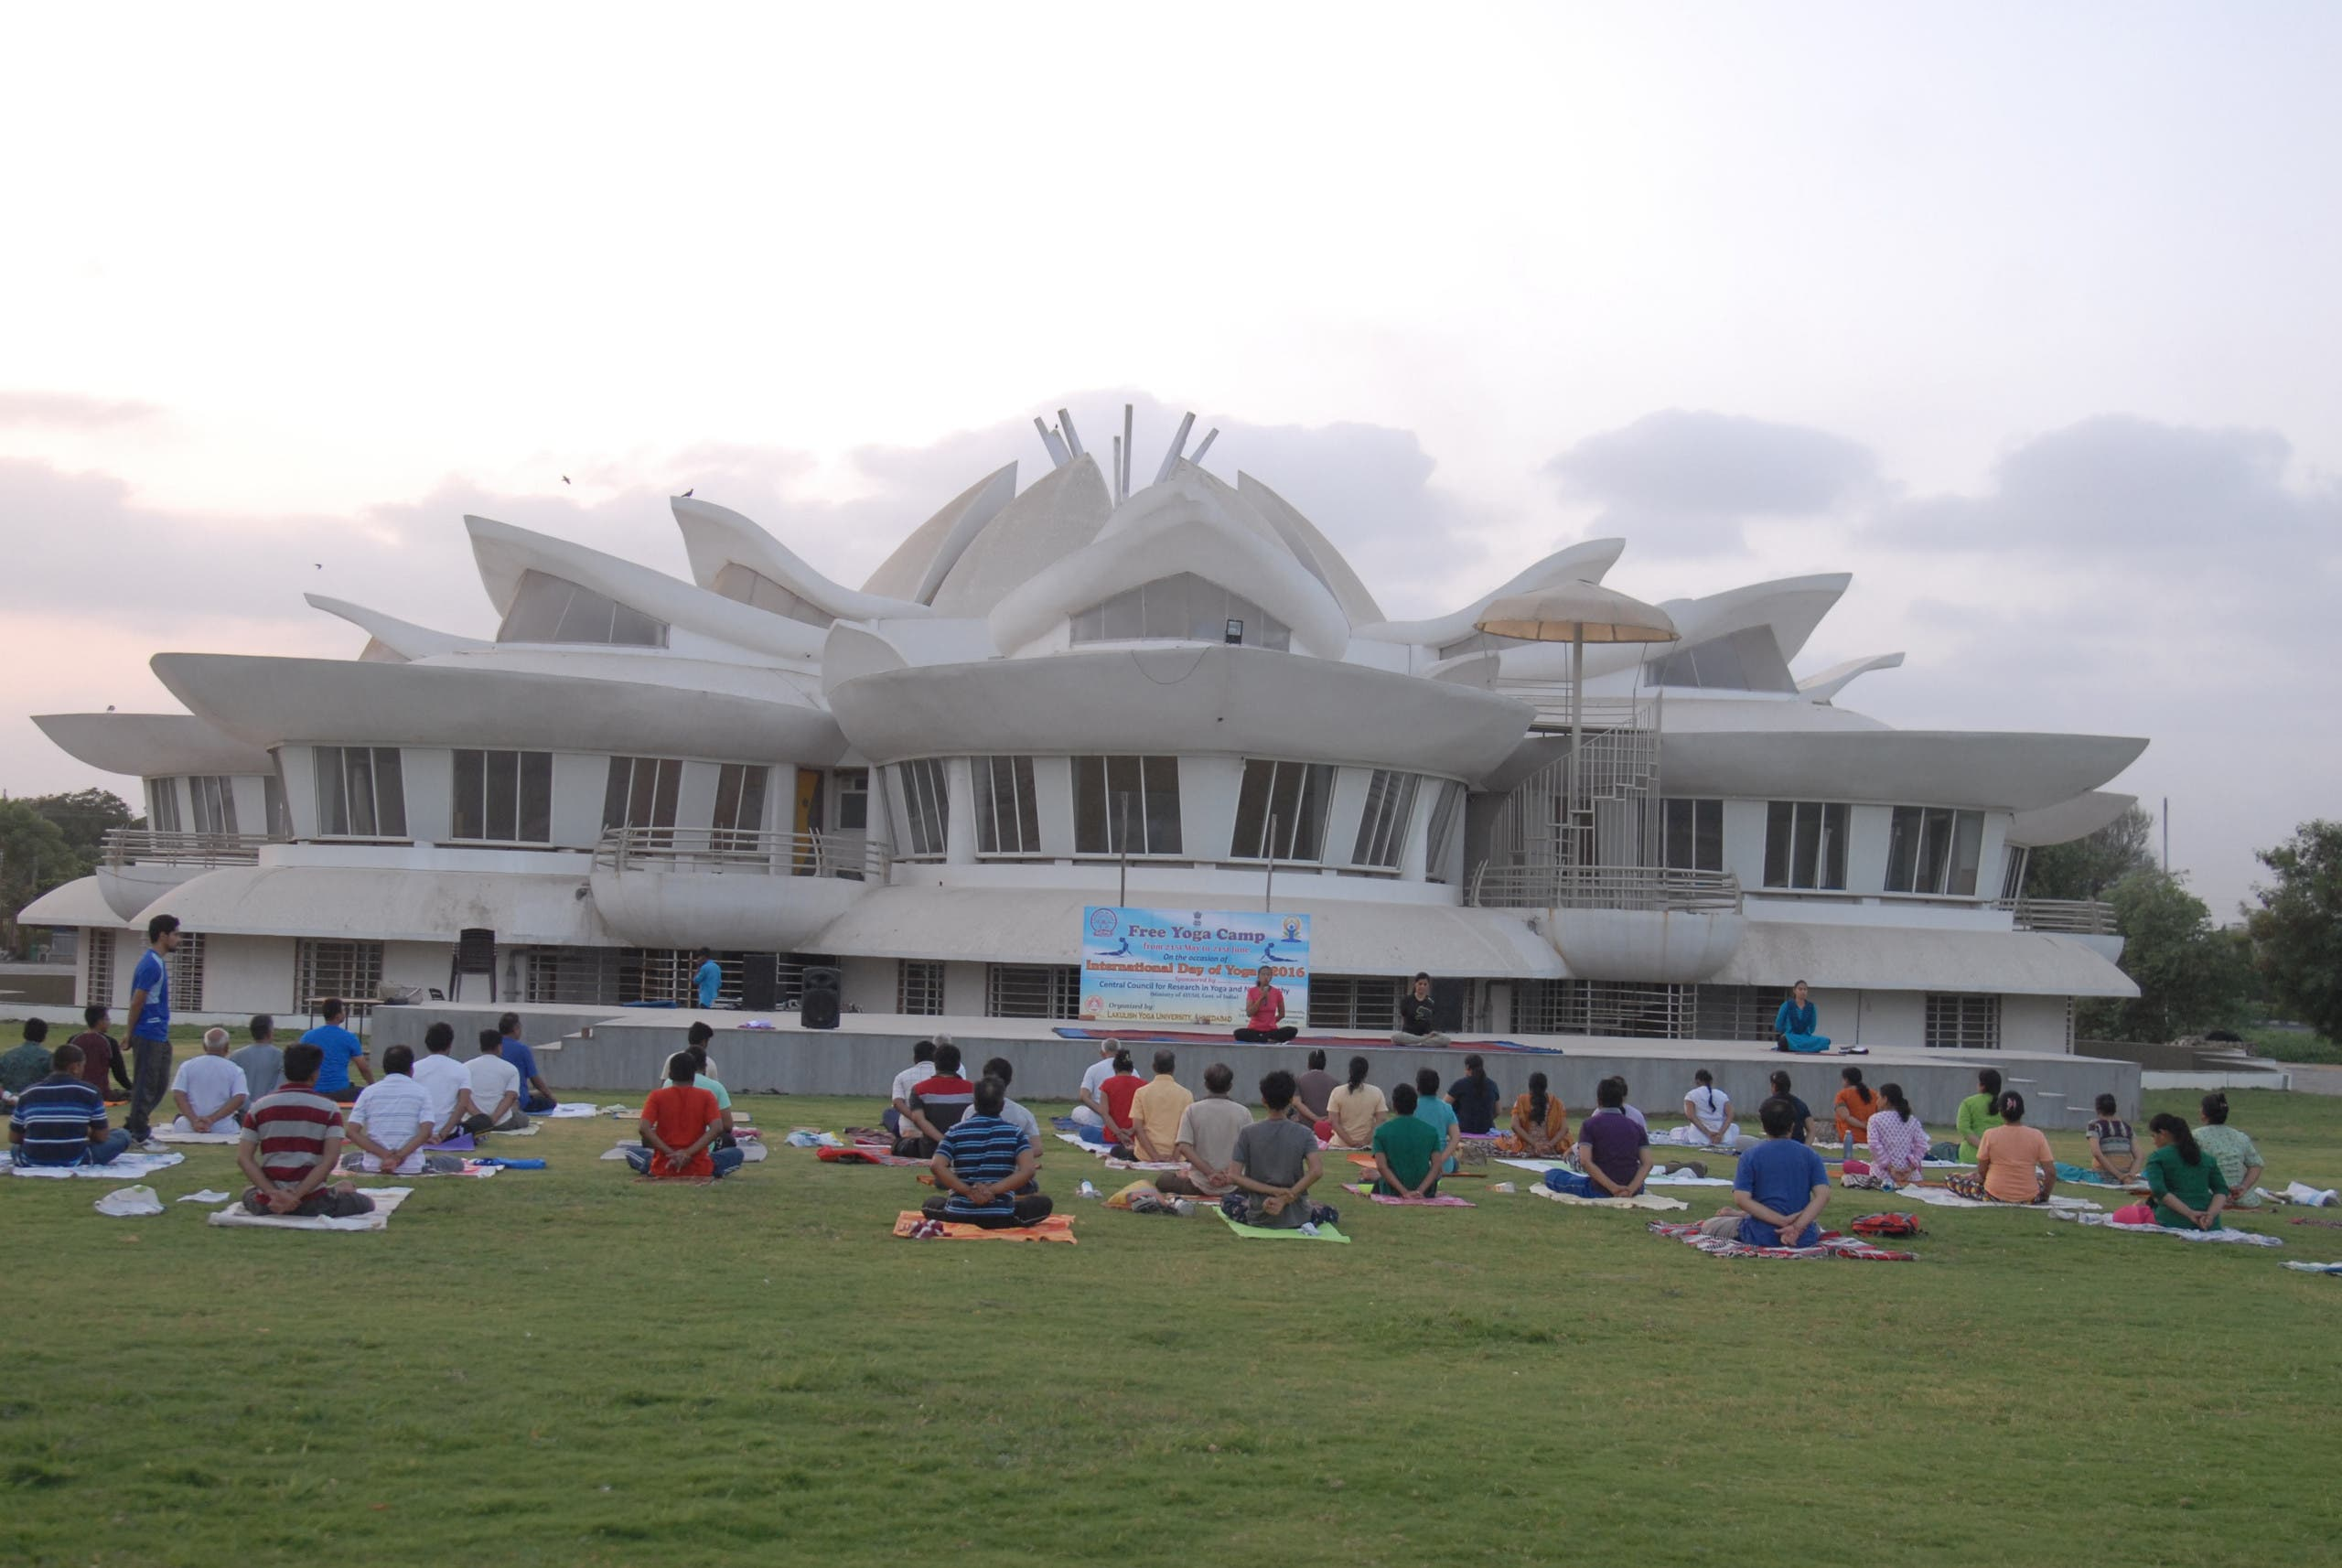 A unique lotus-shaped building with many people doing yoga on open ground. (Supplied)